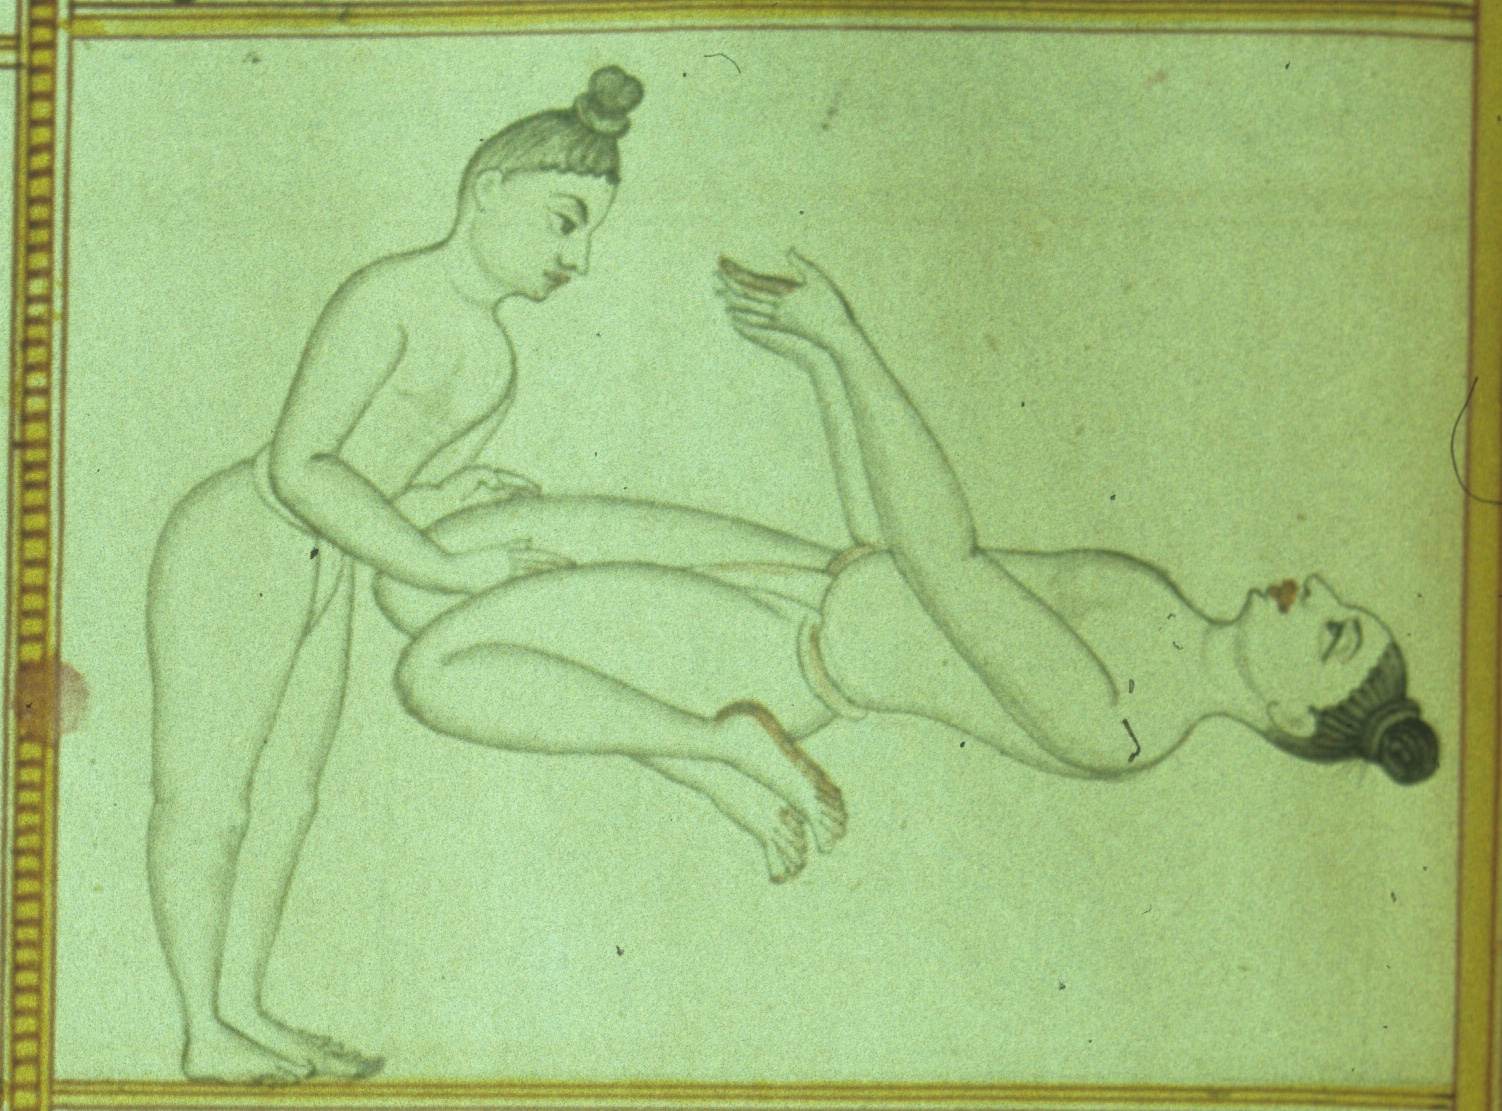 Śrītattvanidhi (Detail from plate 15: Āsana no. 86, Viratāsana) Published by Sjoman, Norman (1996). Yoga Traditions of the Mysore Palace, plate 15 (detail).